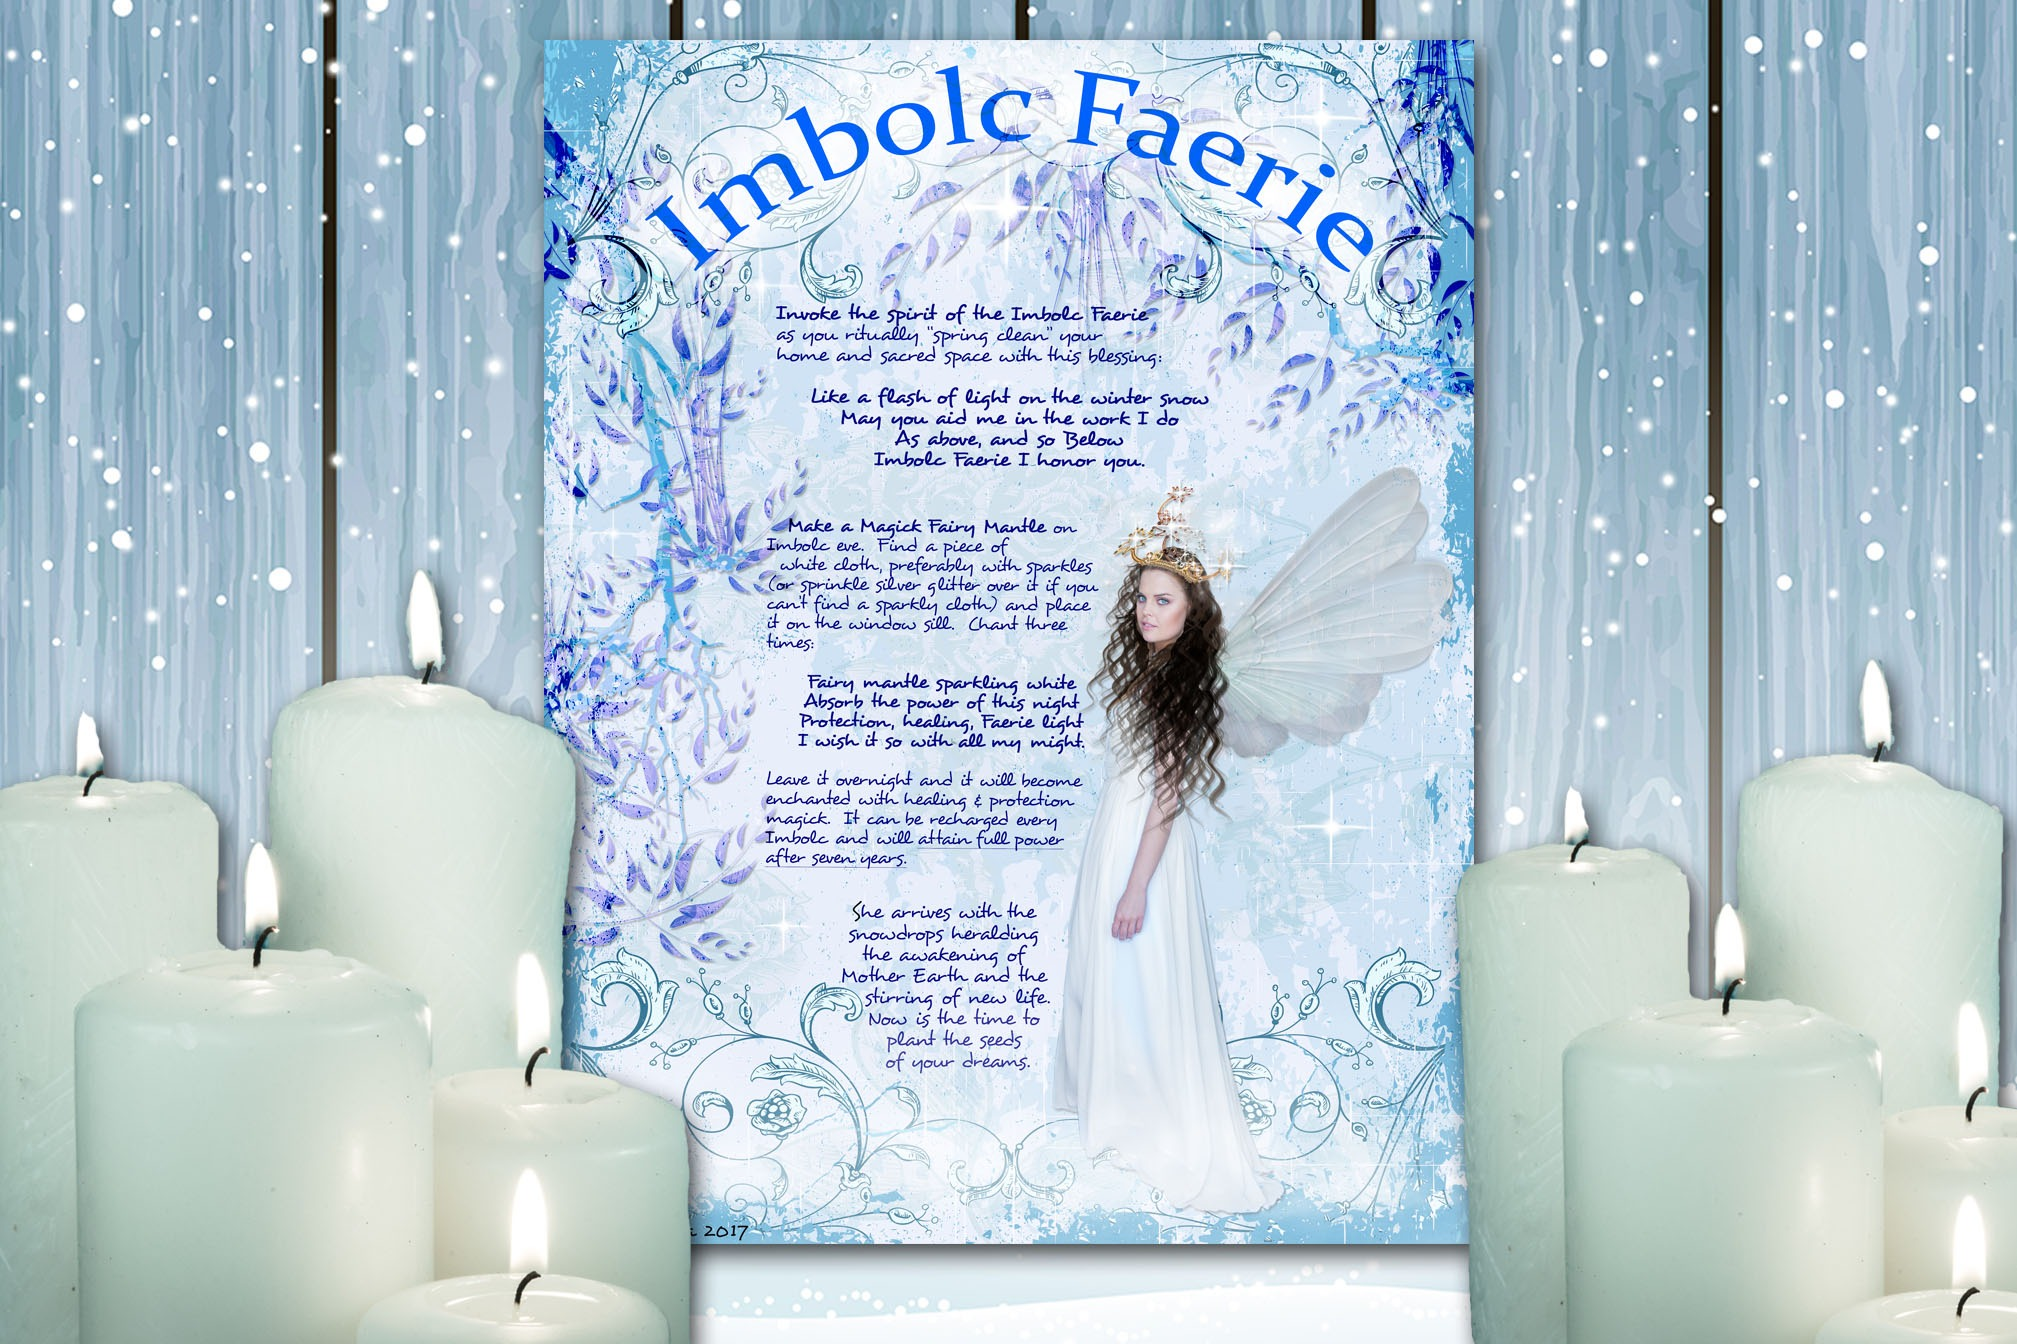 THE IMBOLC FAERIE Realm of the Fey Lore